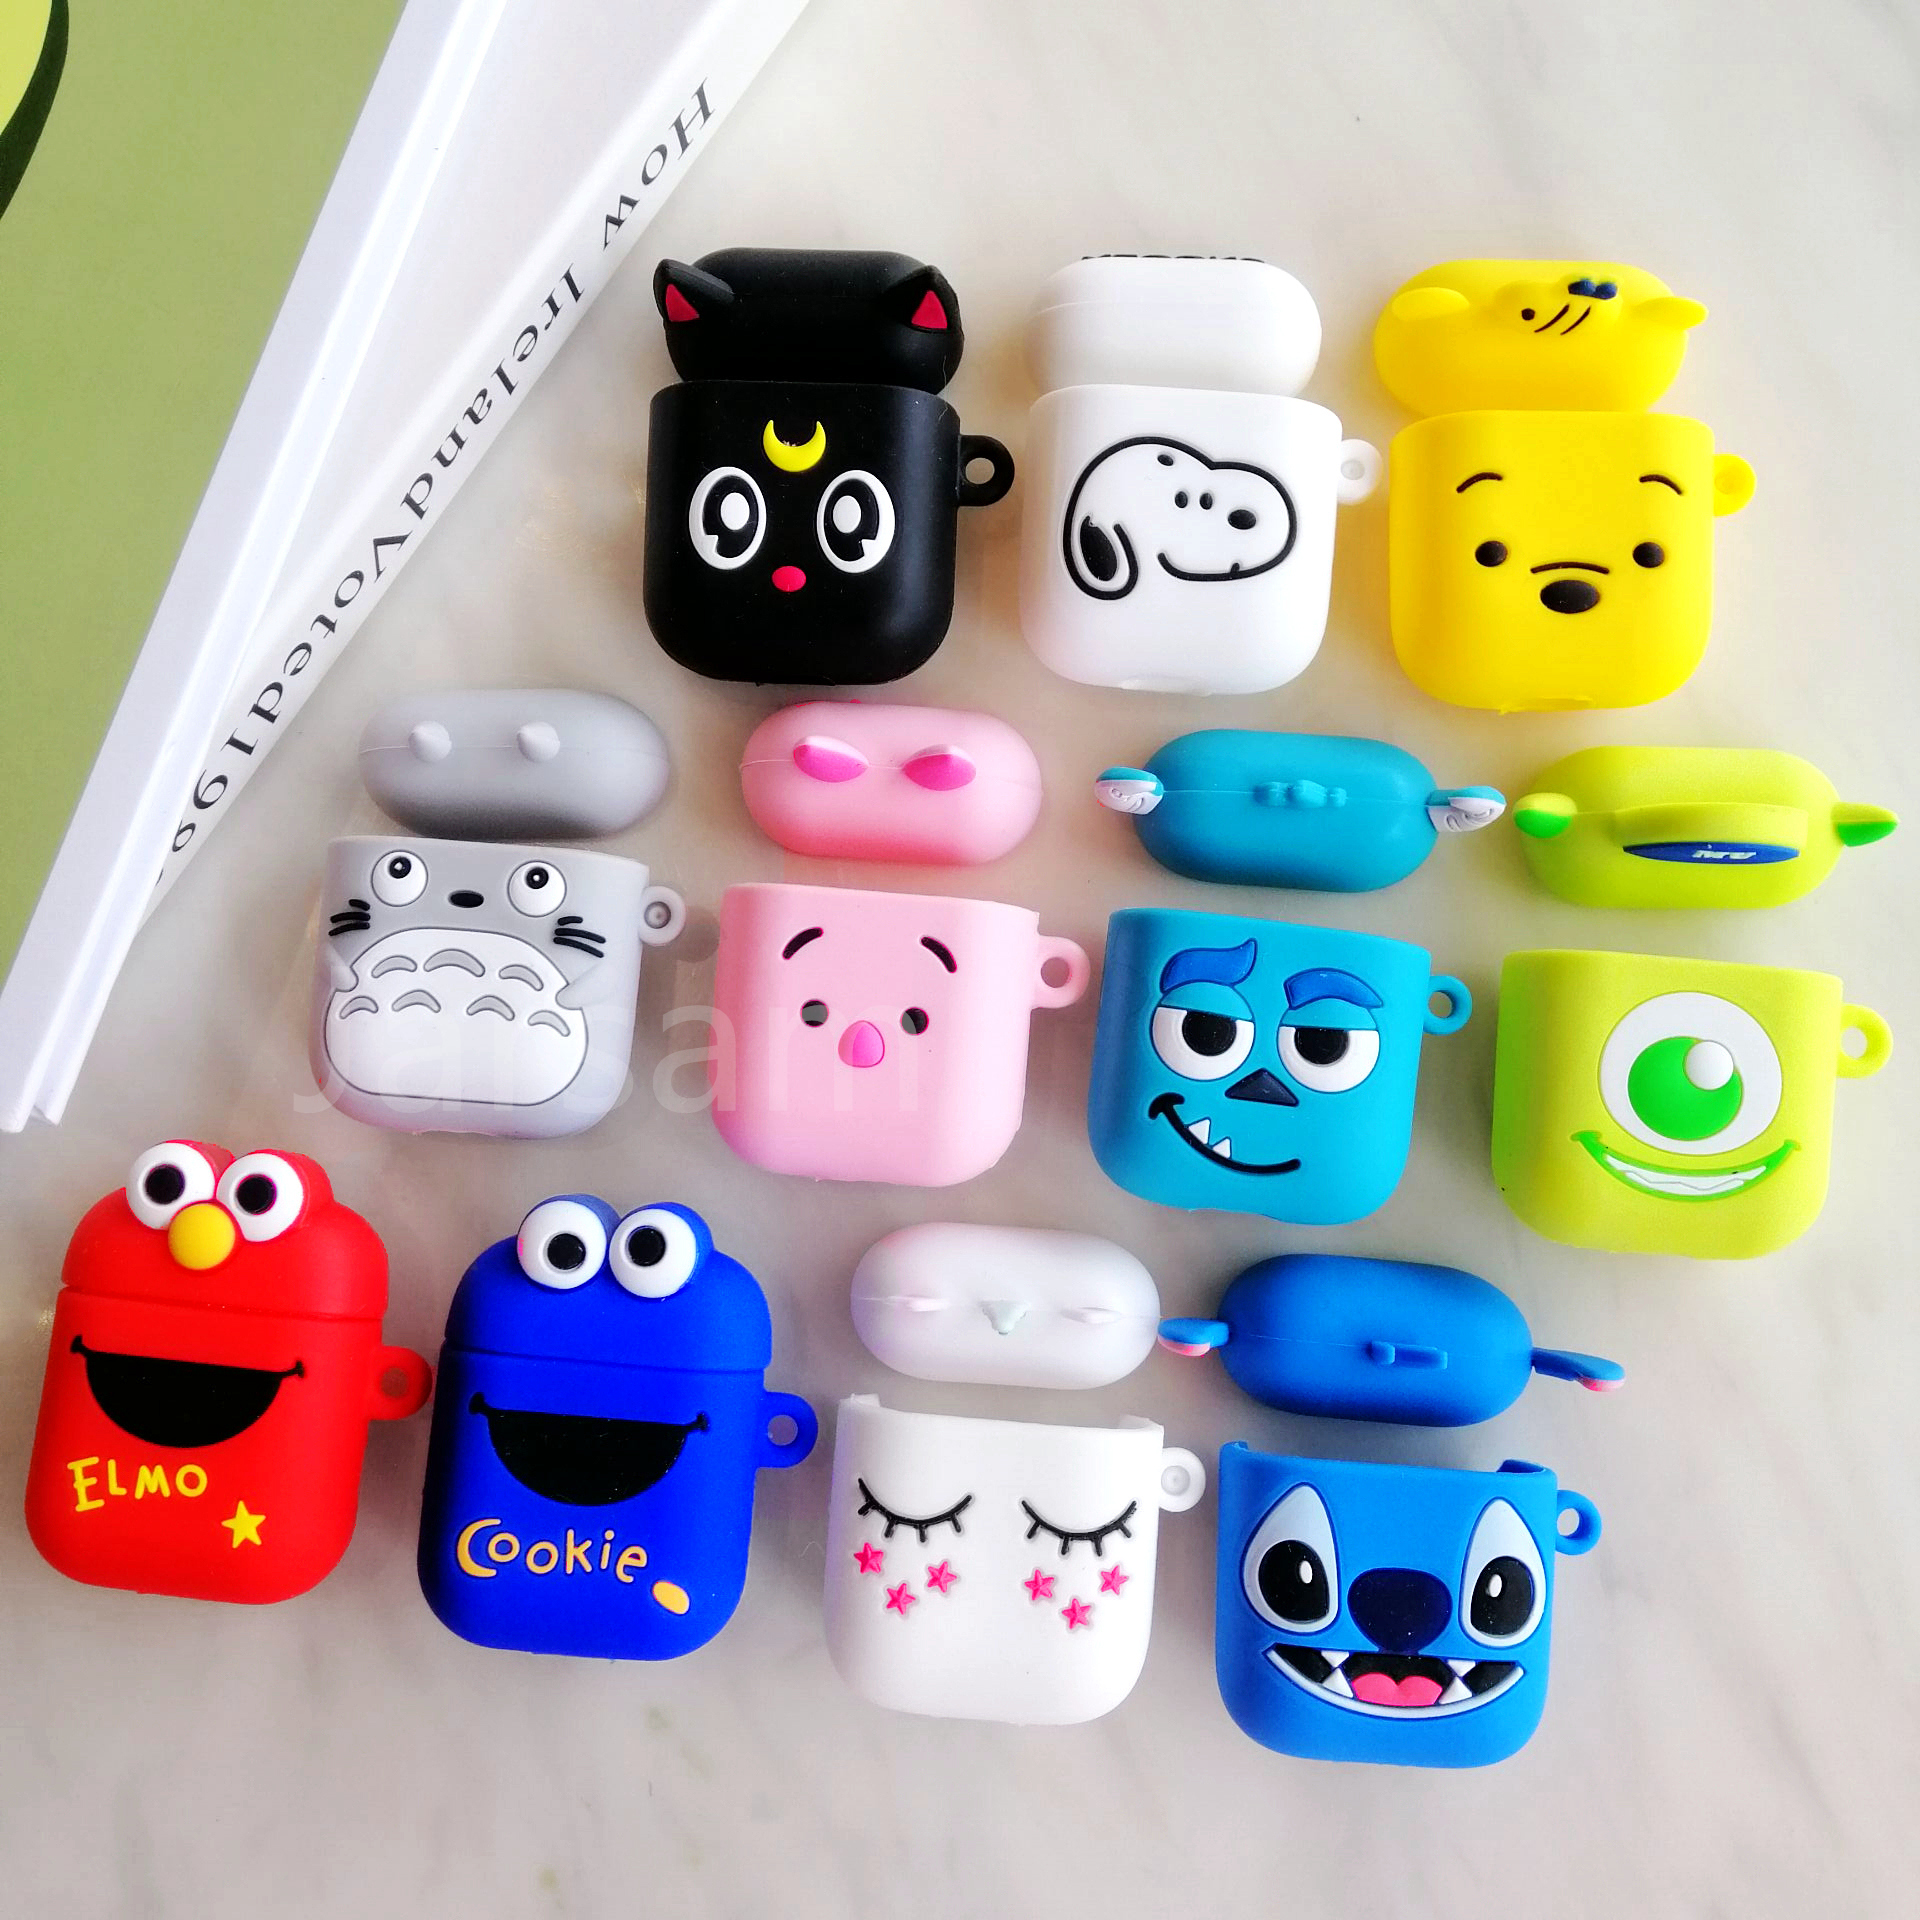 Cute Wireless Earphone Case For Apple AirPods  Silicone Charging Headphones Case For Airpods Protective Cover